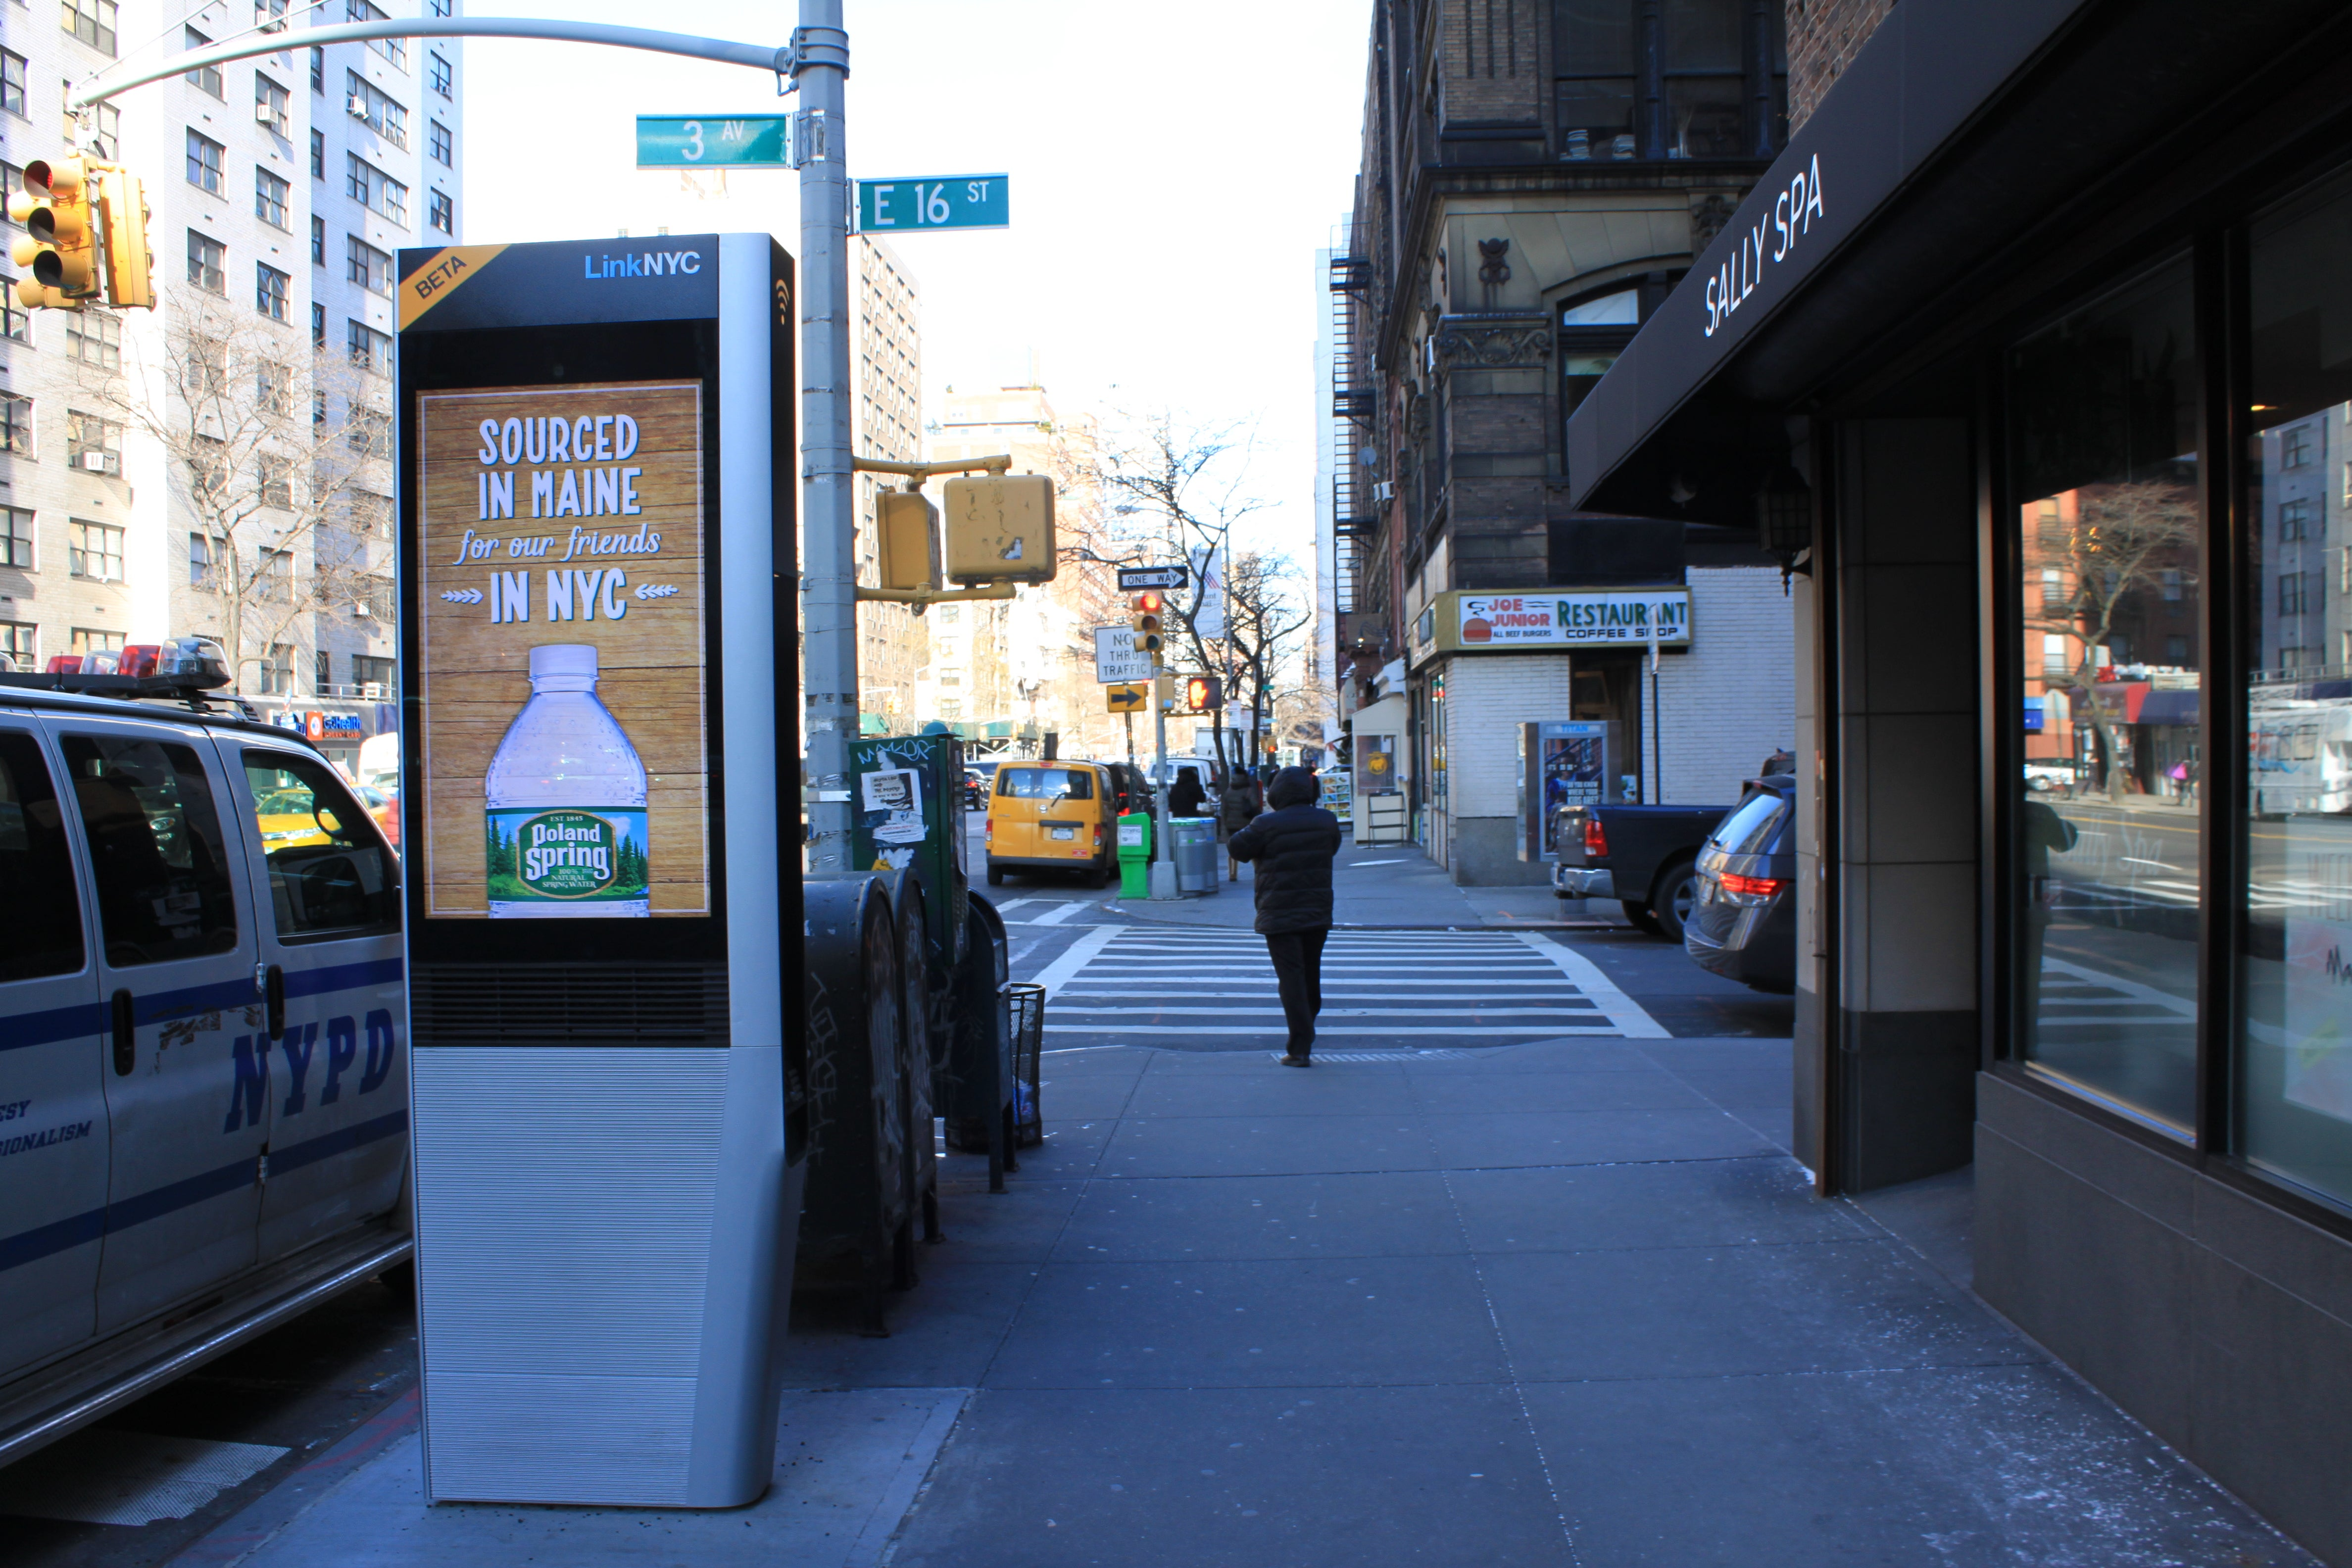 NYC's New Public Wifi Is Obscenely Fast